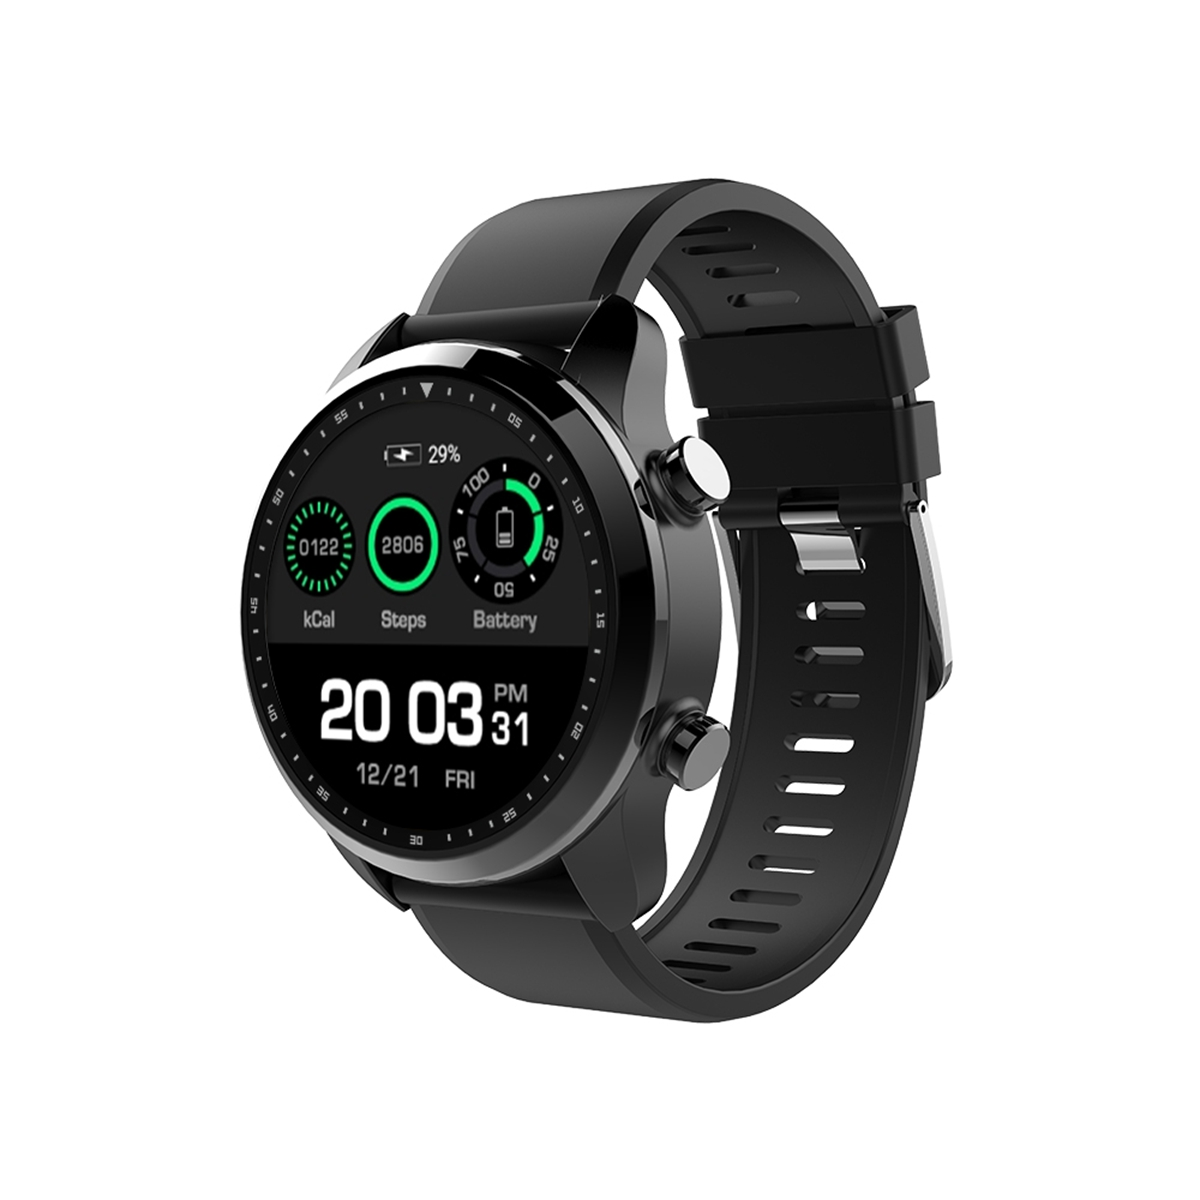 IP68 Waterproof 4G Kospet Brave Smartwatch Support Bluetooth Calling with 2+16G Large MemoryIP68 Waterproof 4G Kospet Brave Smartwatch Support Bluetooth Calling with 2+16G Large Memory